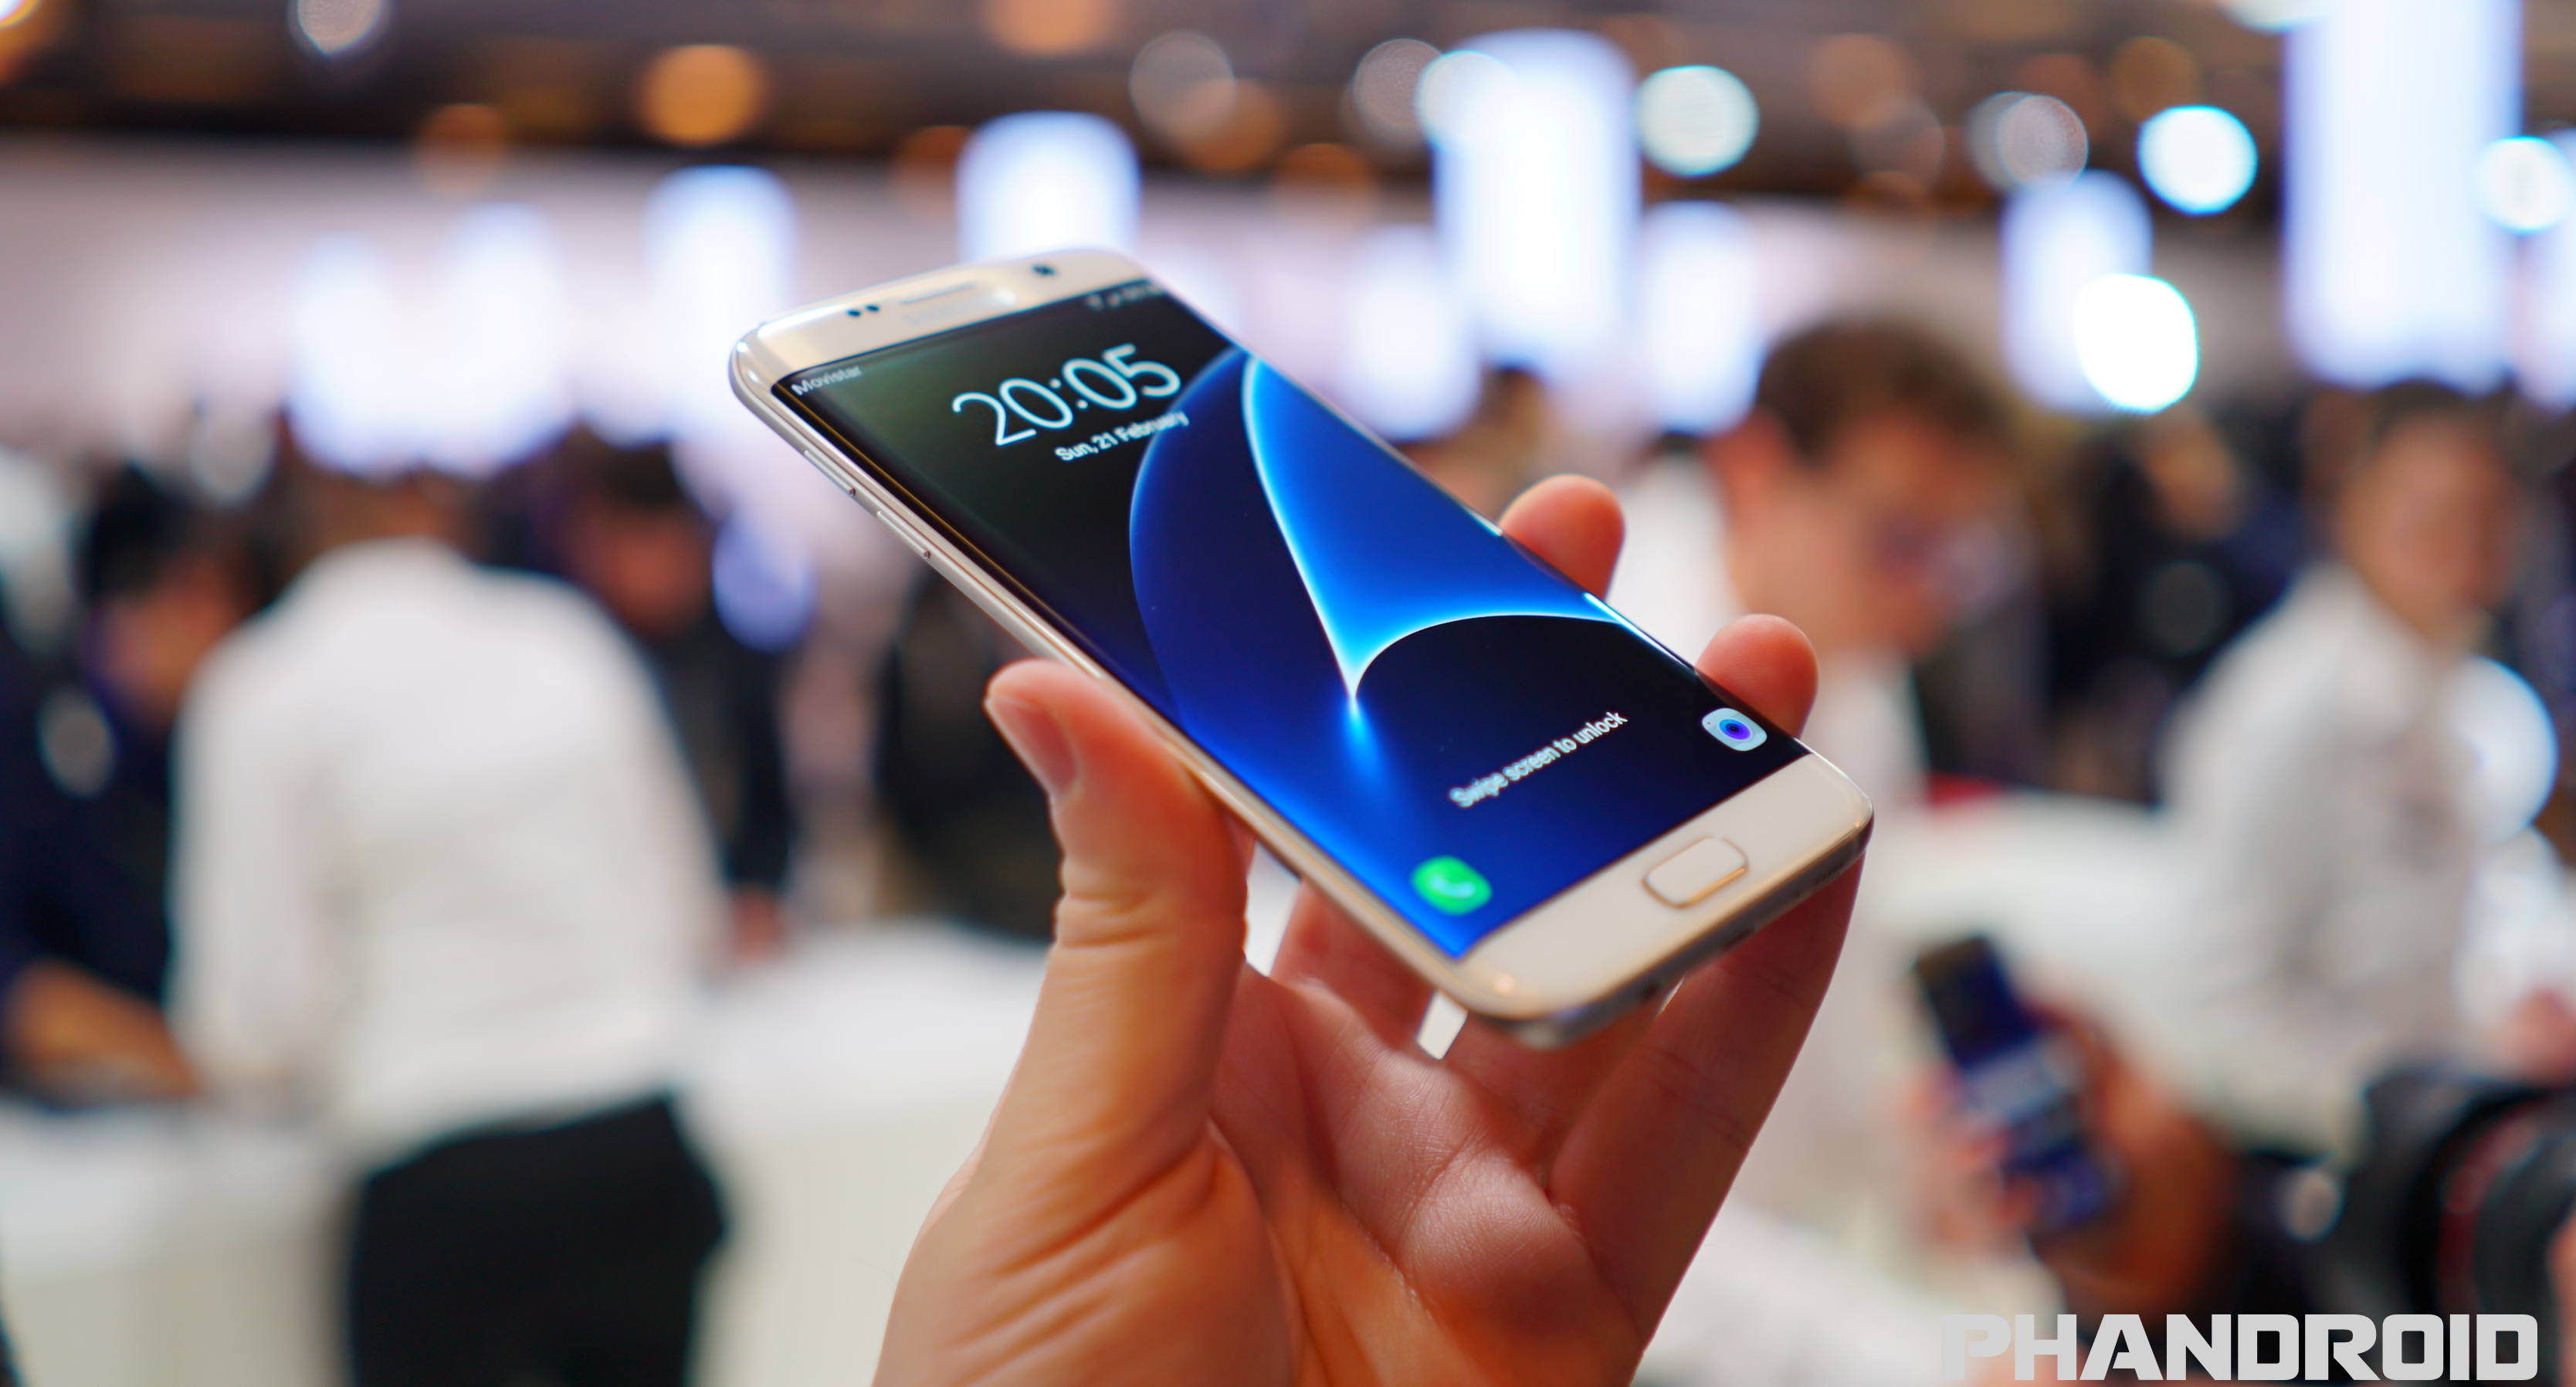 Hands On With The Samsung Galaxy S7 And Galaxy S7 Edge Video